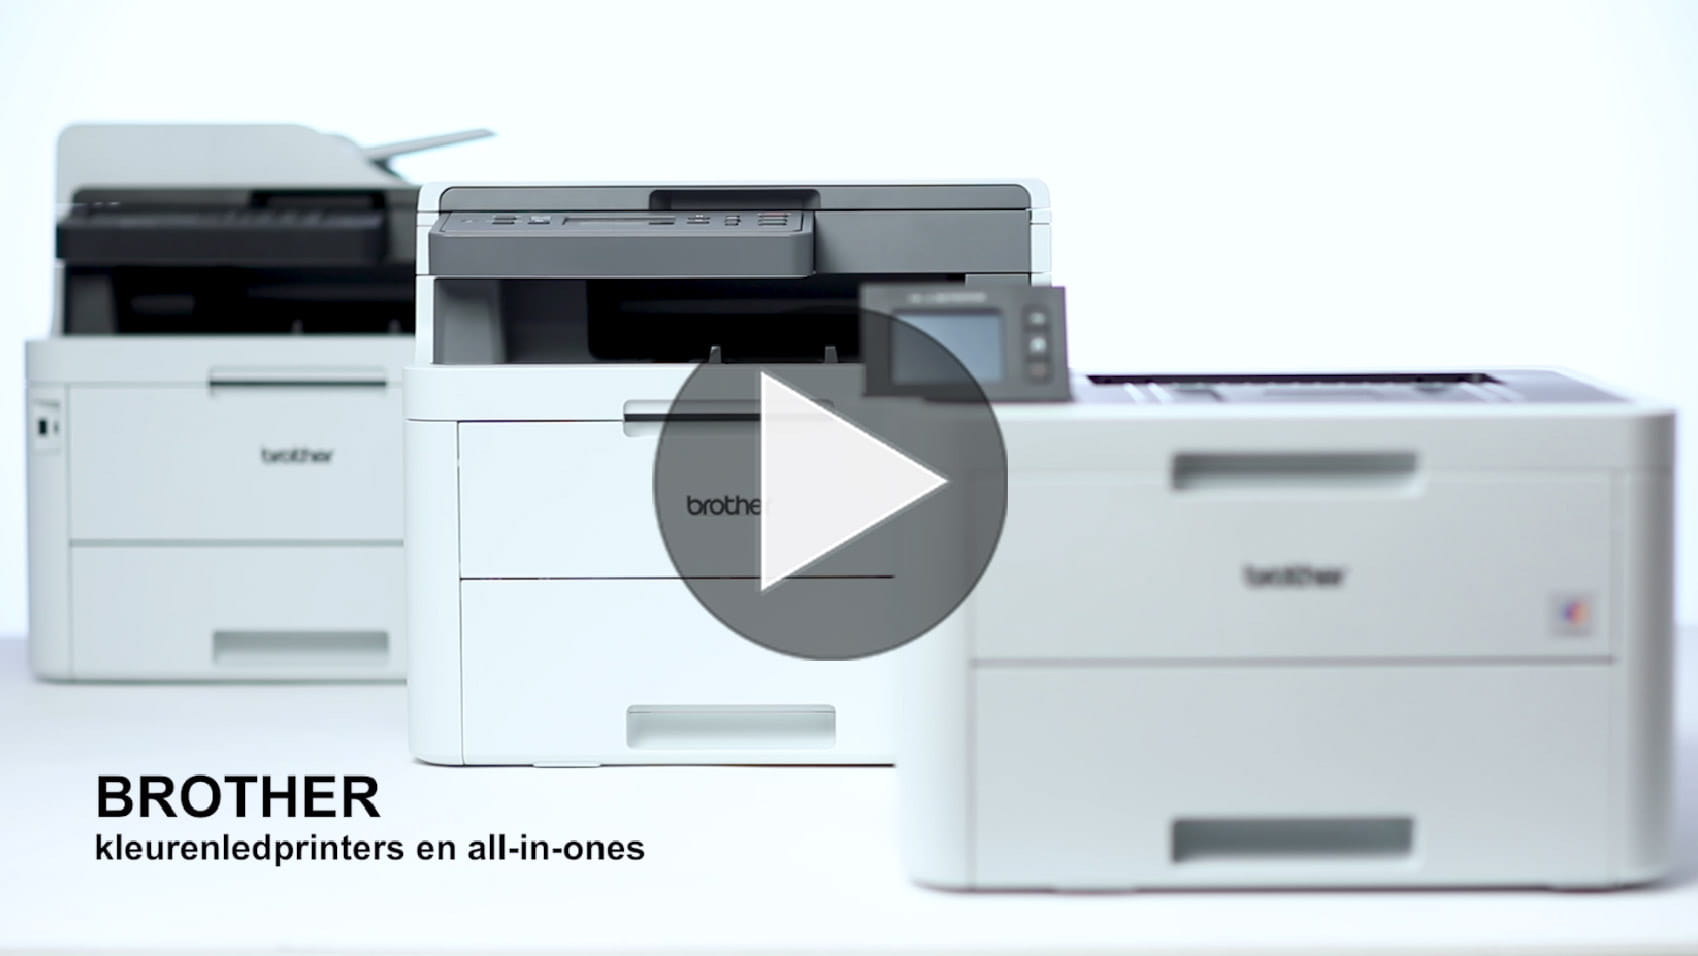 MFC-L3730CDN All-in-one kleurenledprinter 7